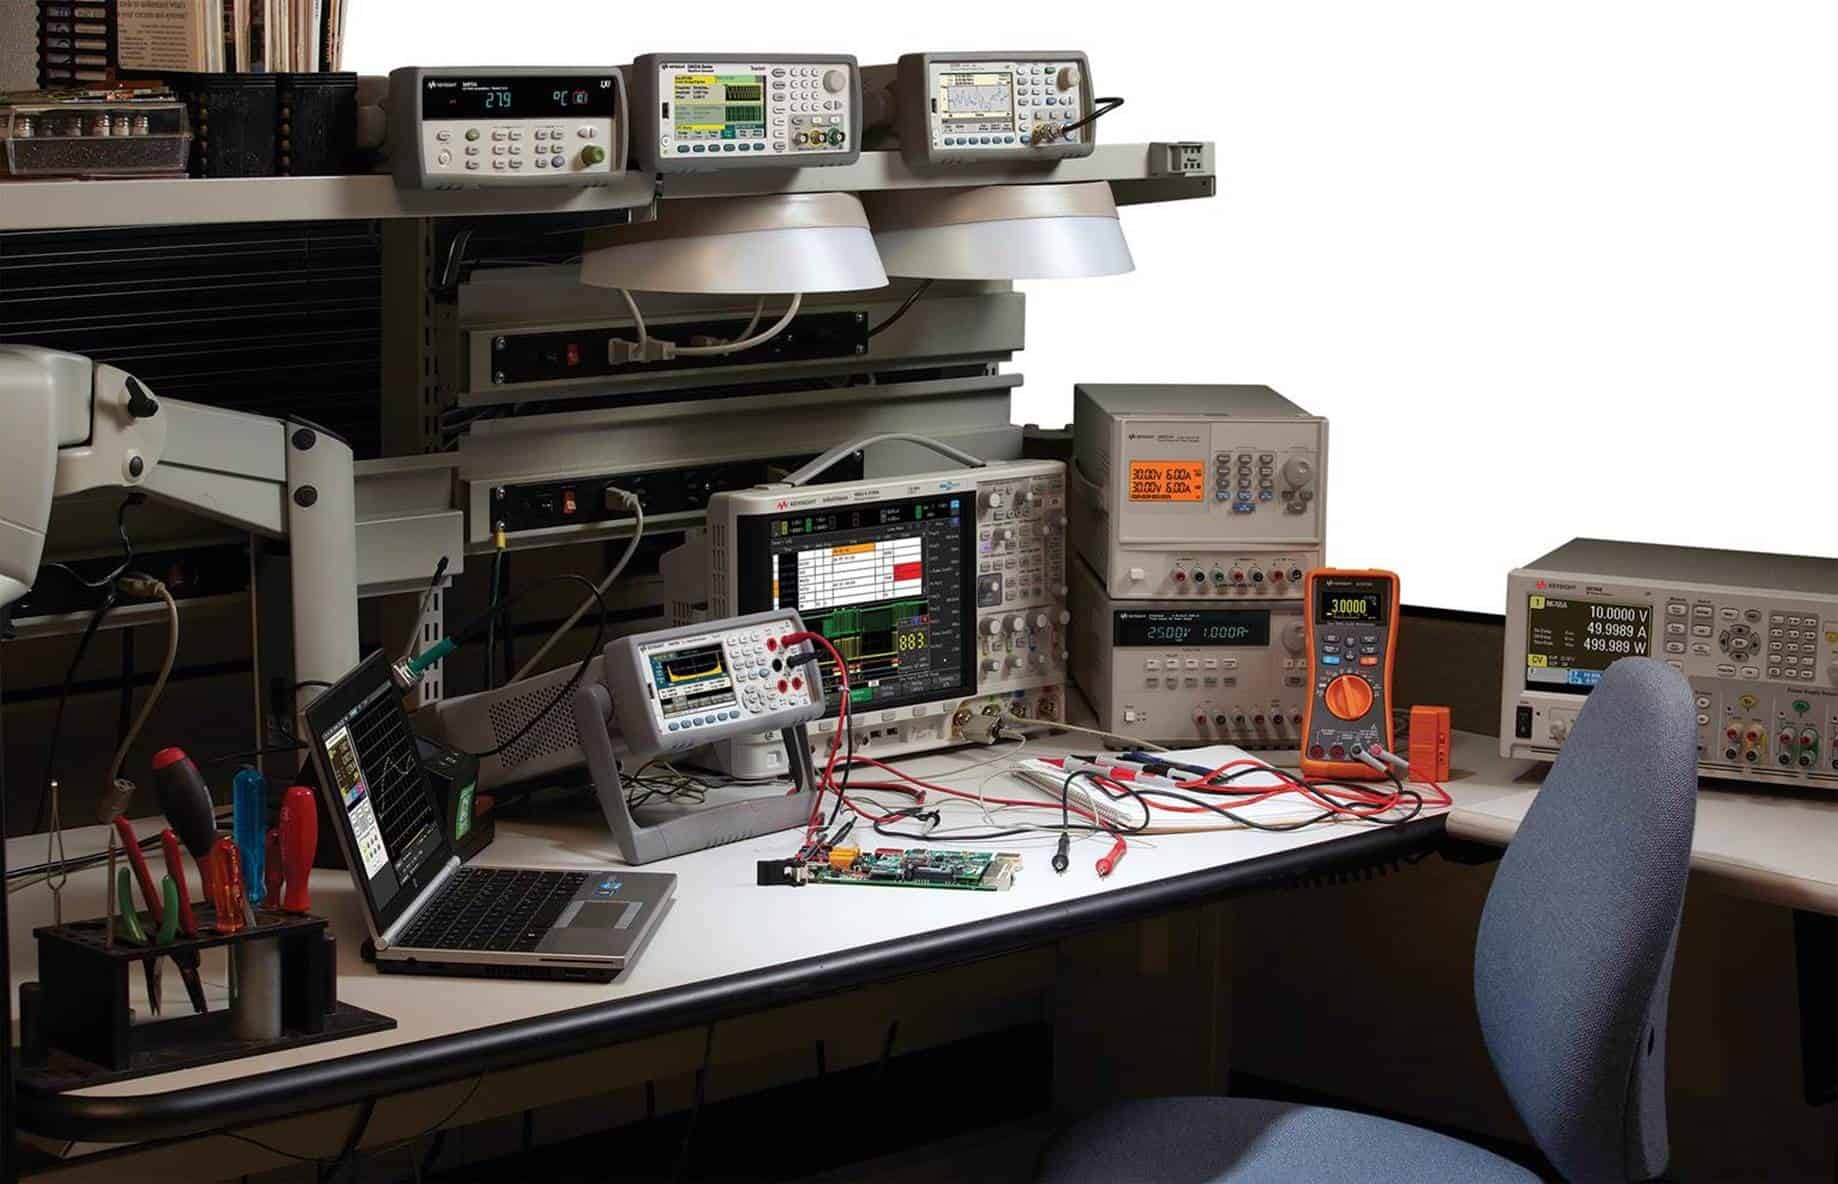 keysight-bench products available at gap wireless